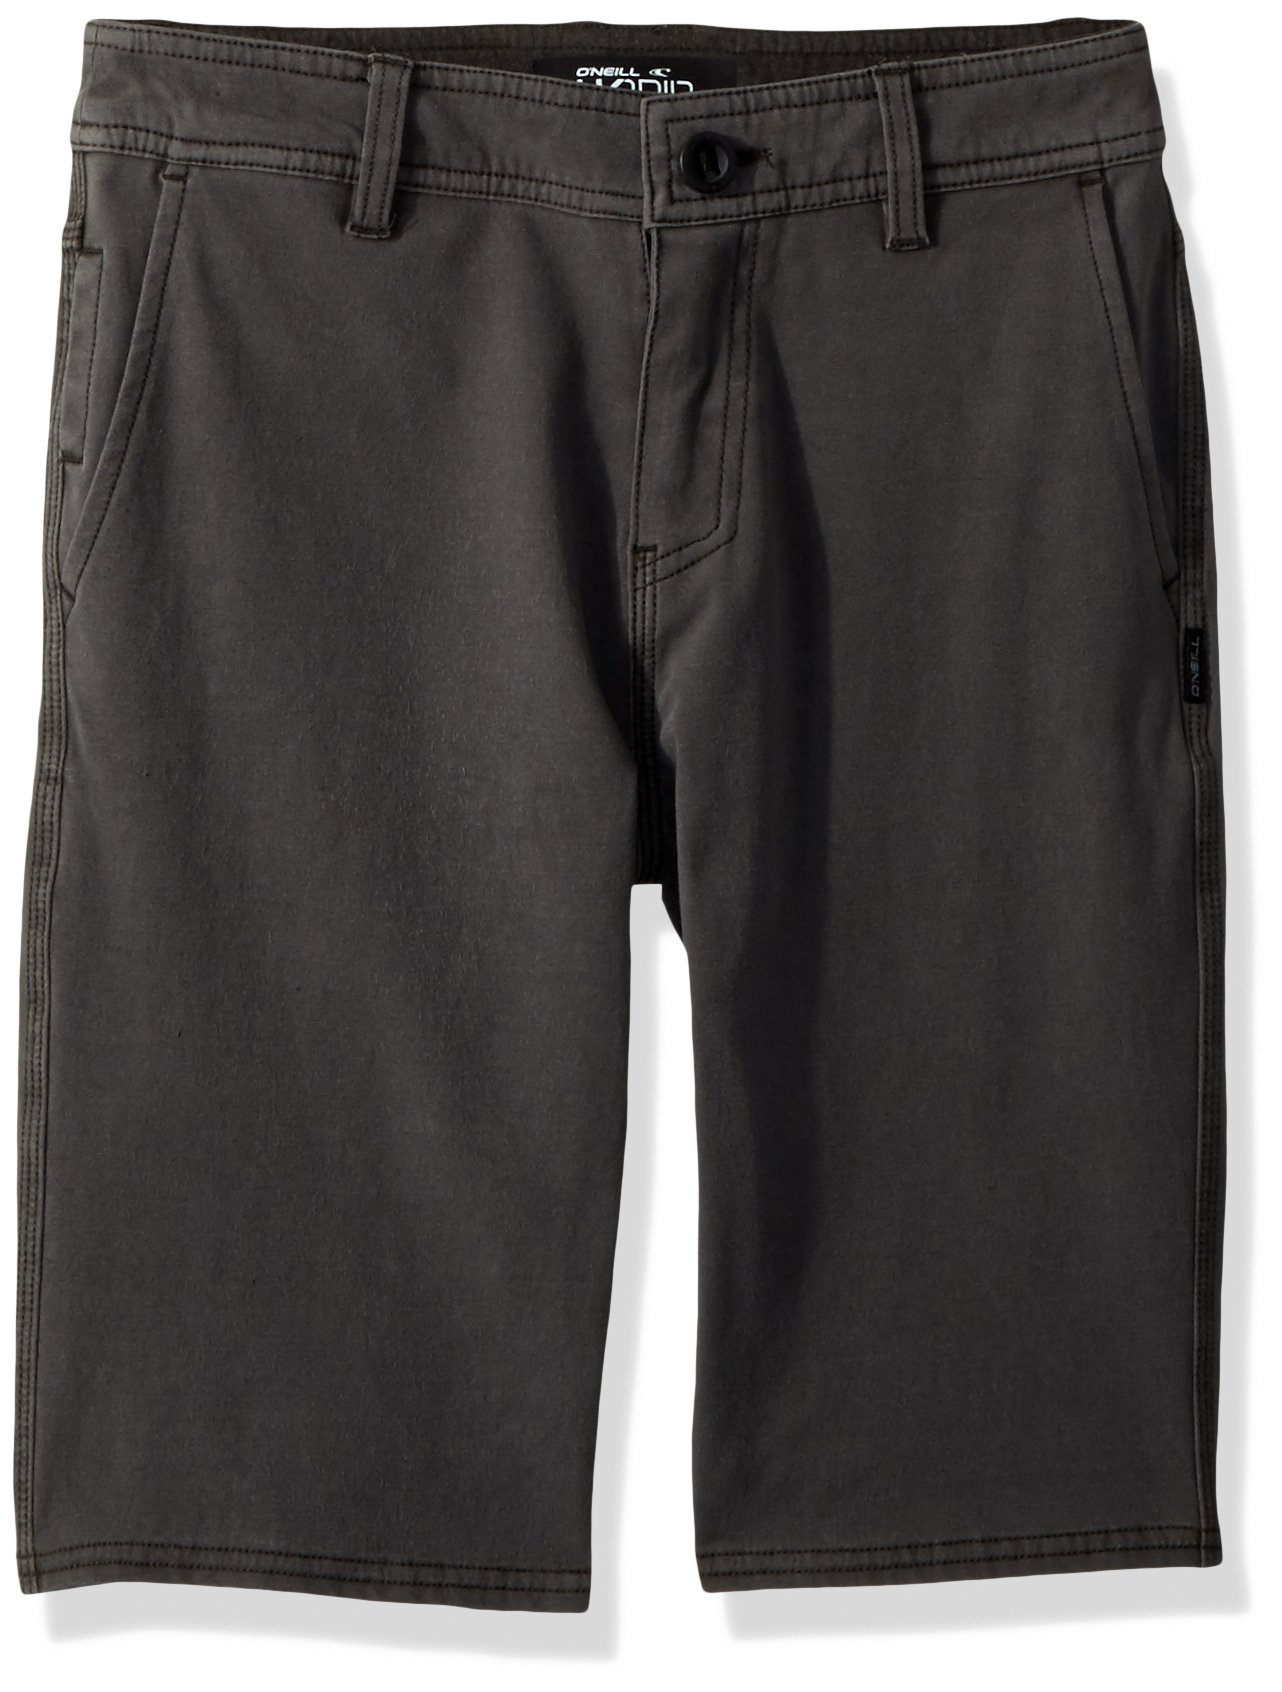 O'Neill Big Boys' Venture Overdye Hybrid Boardshort, Coffee, 25